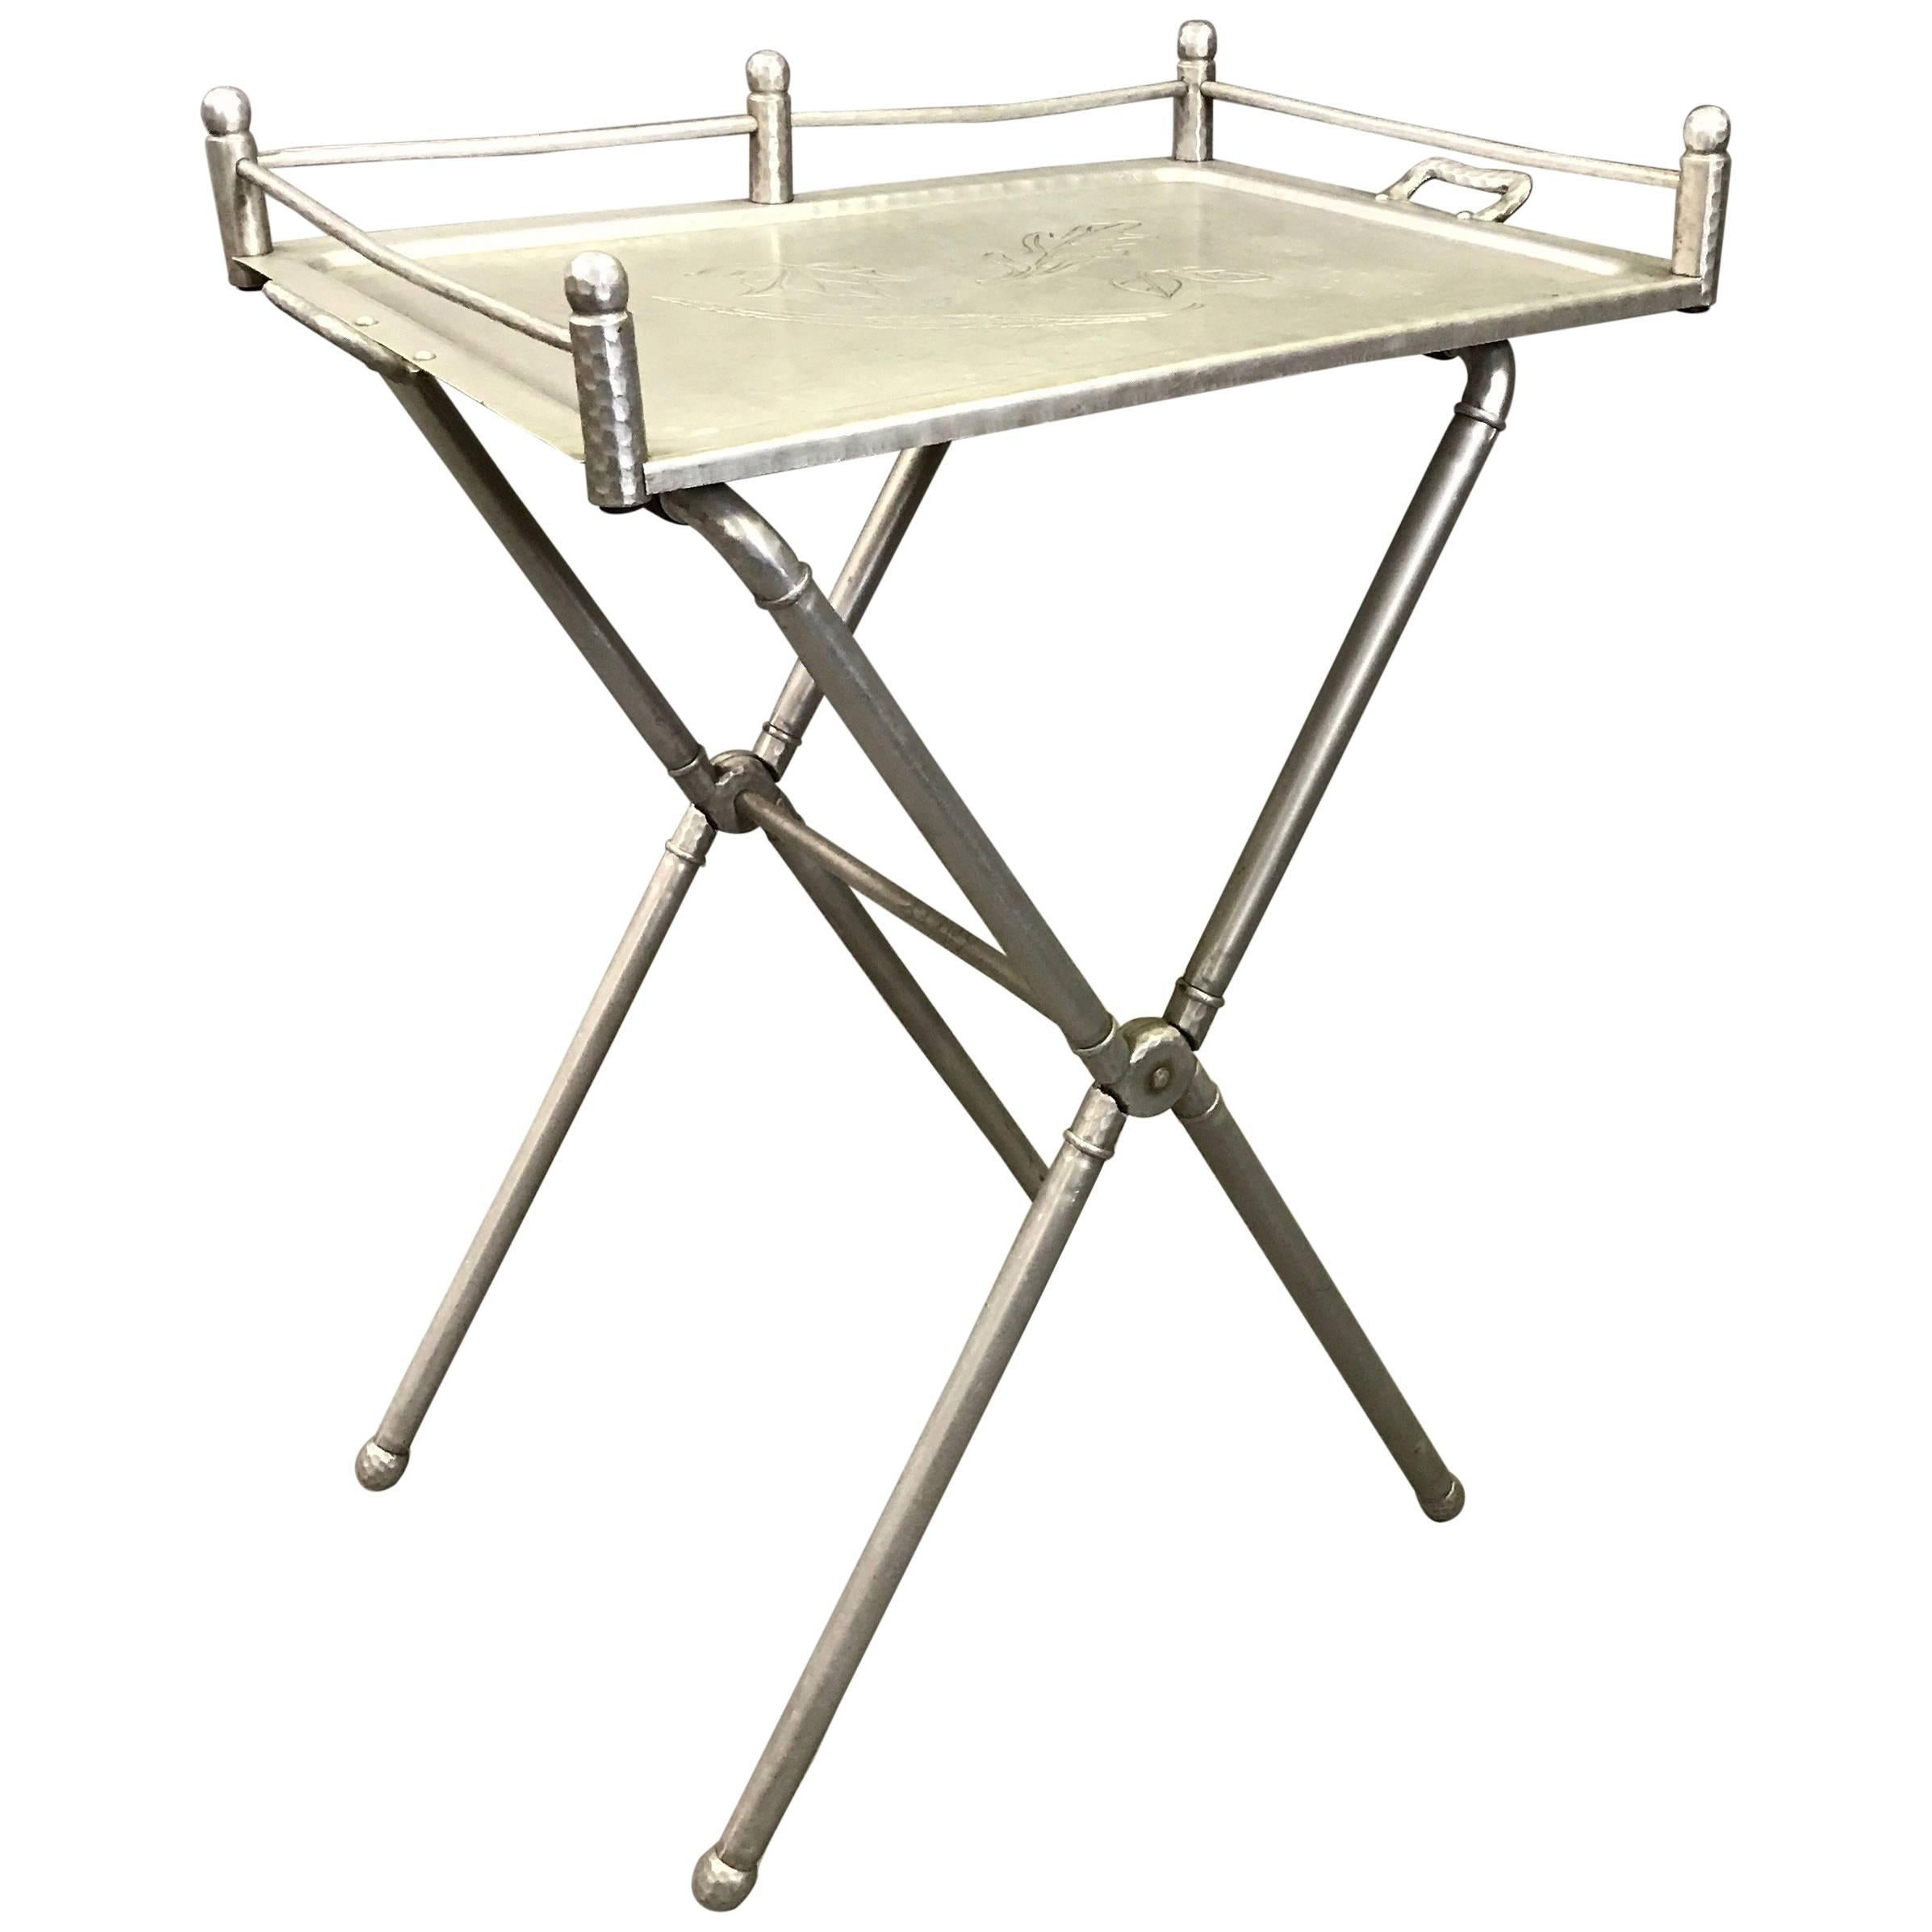 Brushed Aluminum Folding Tray Table by Mary Wright for Everlast